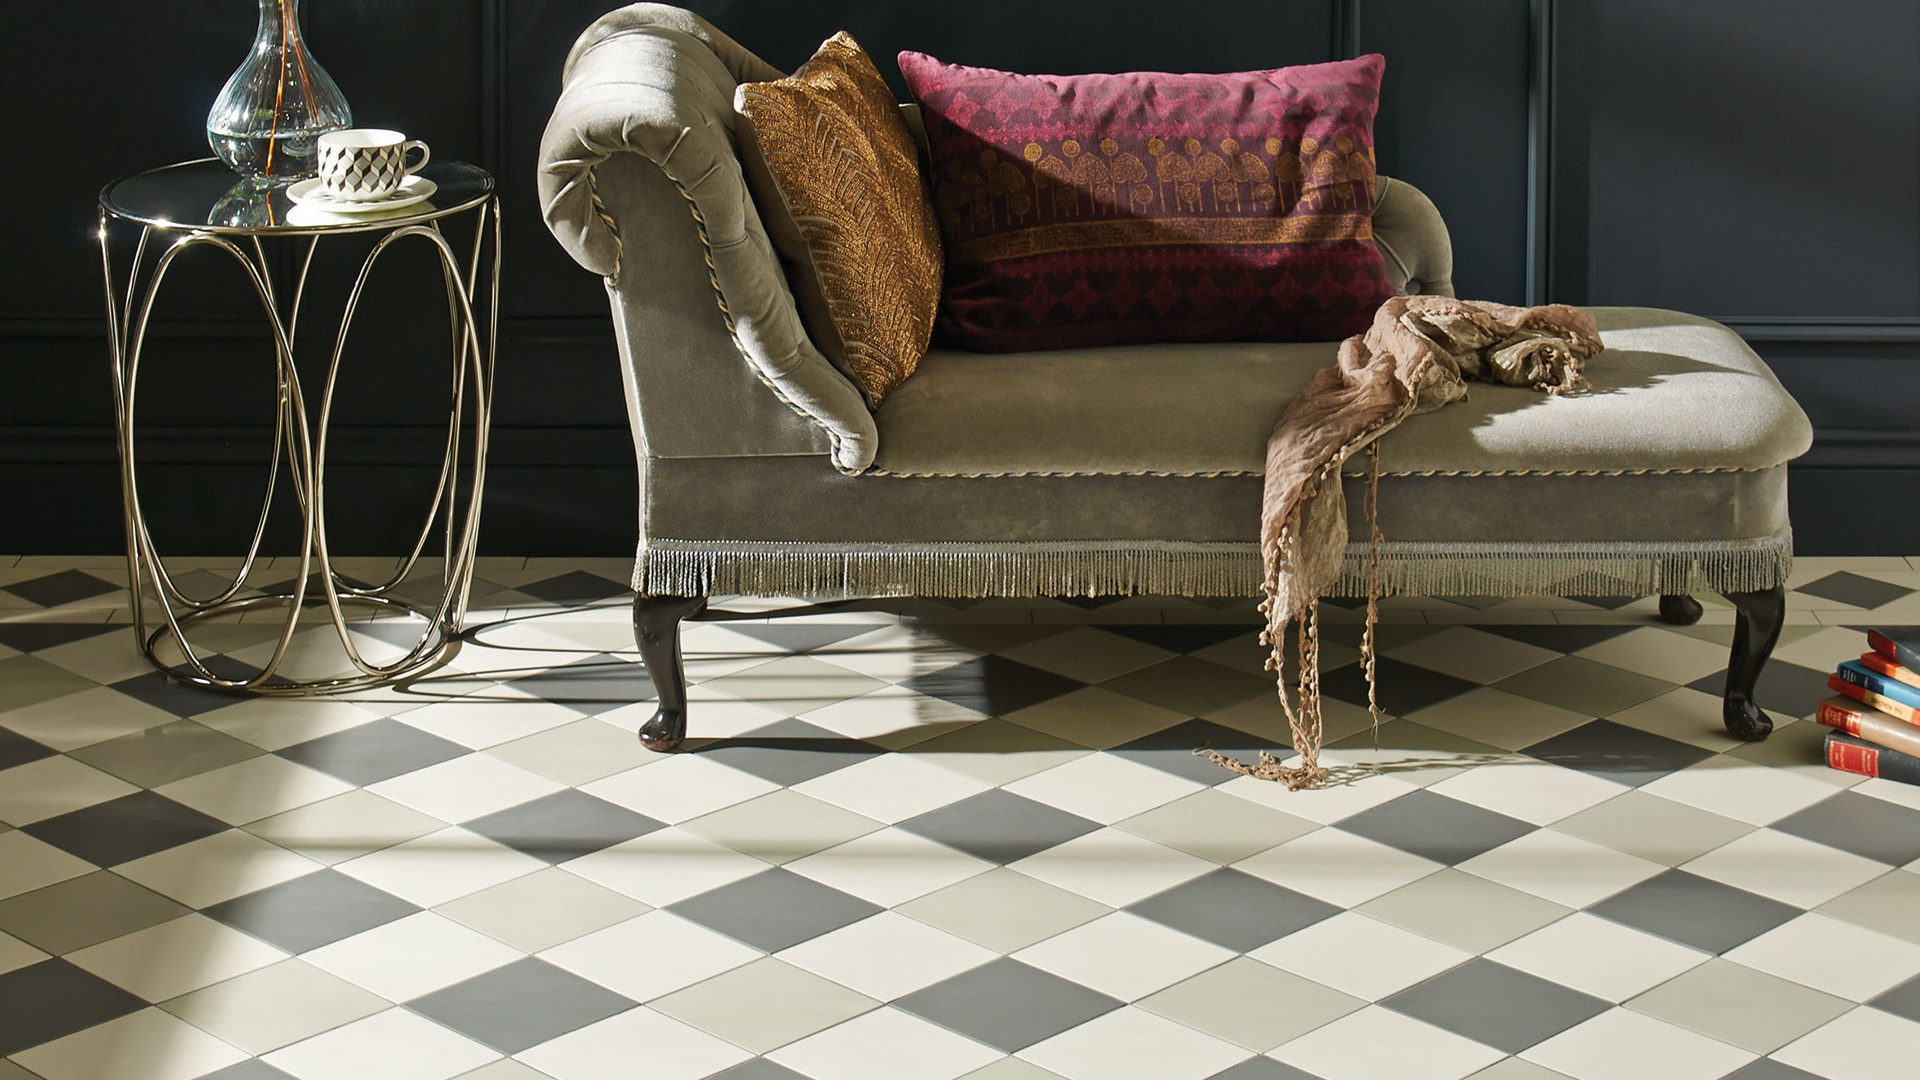 Original style tiles tile manufacturer and supplier victorian floor tile gallery dailygadgetfo Gallery